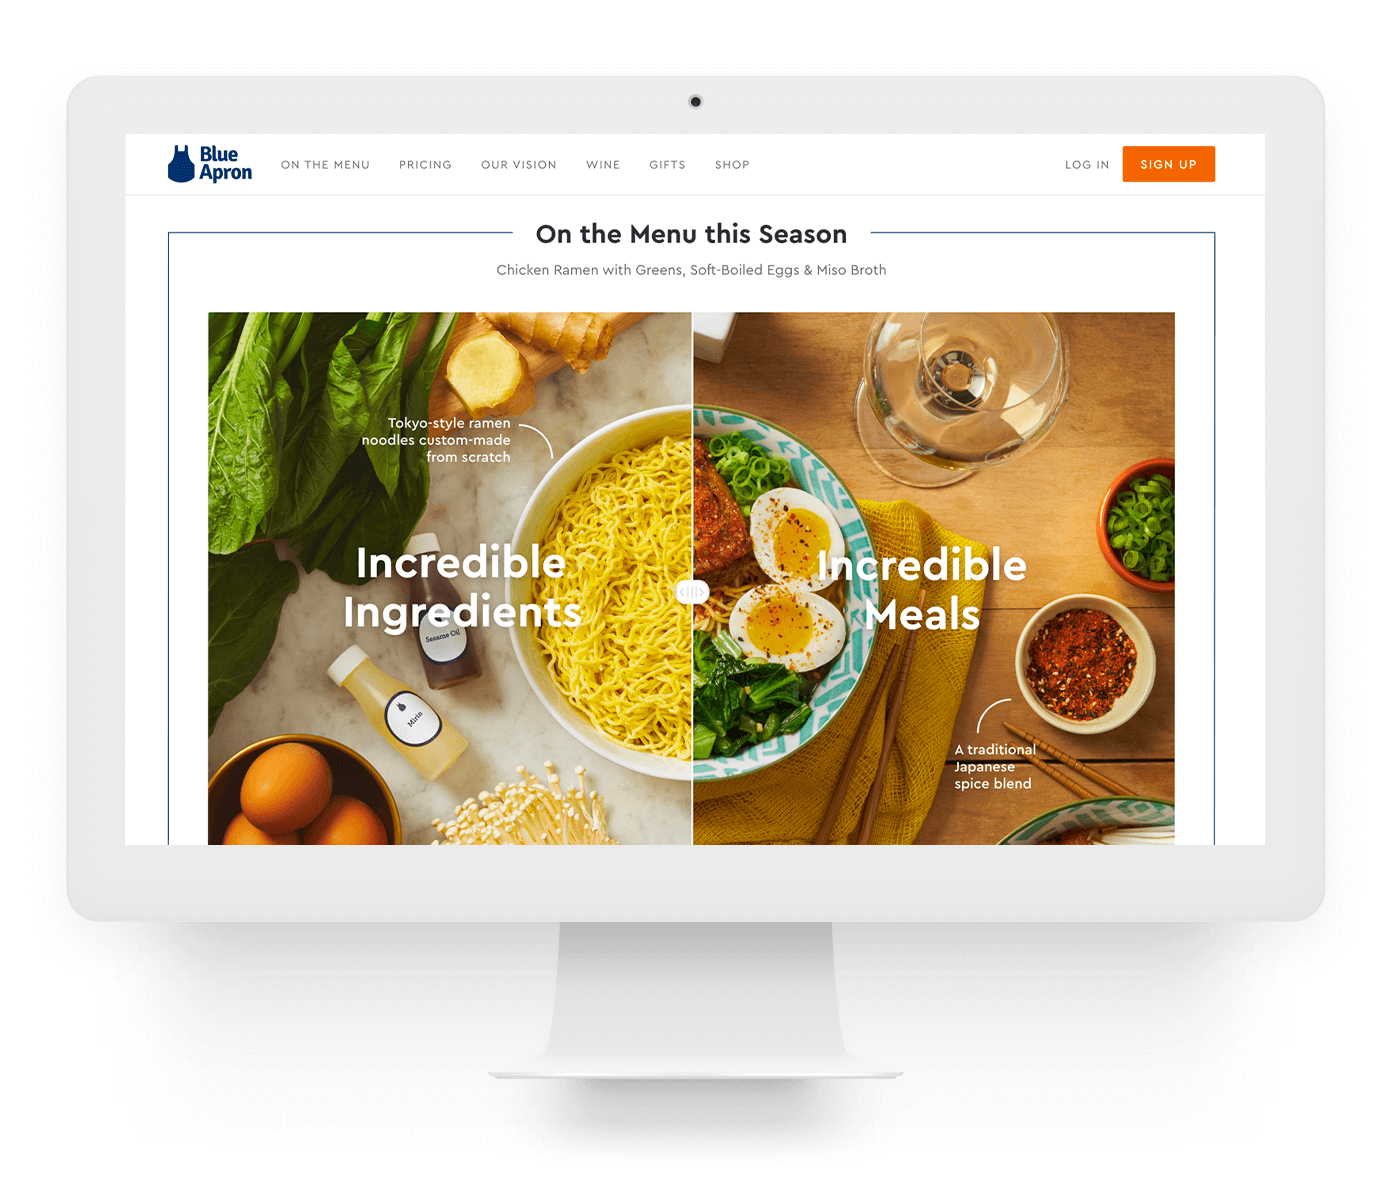 Type Mates Fonts In Use Blue Apron 11 Cera Pro